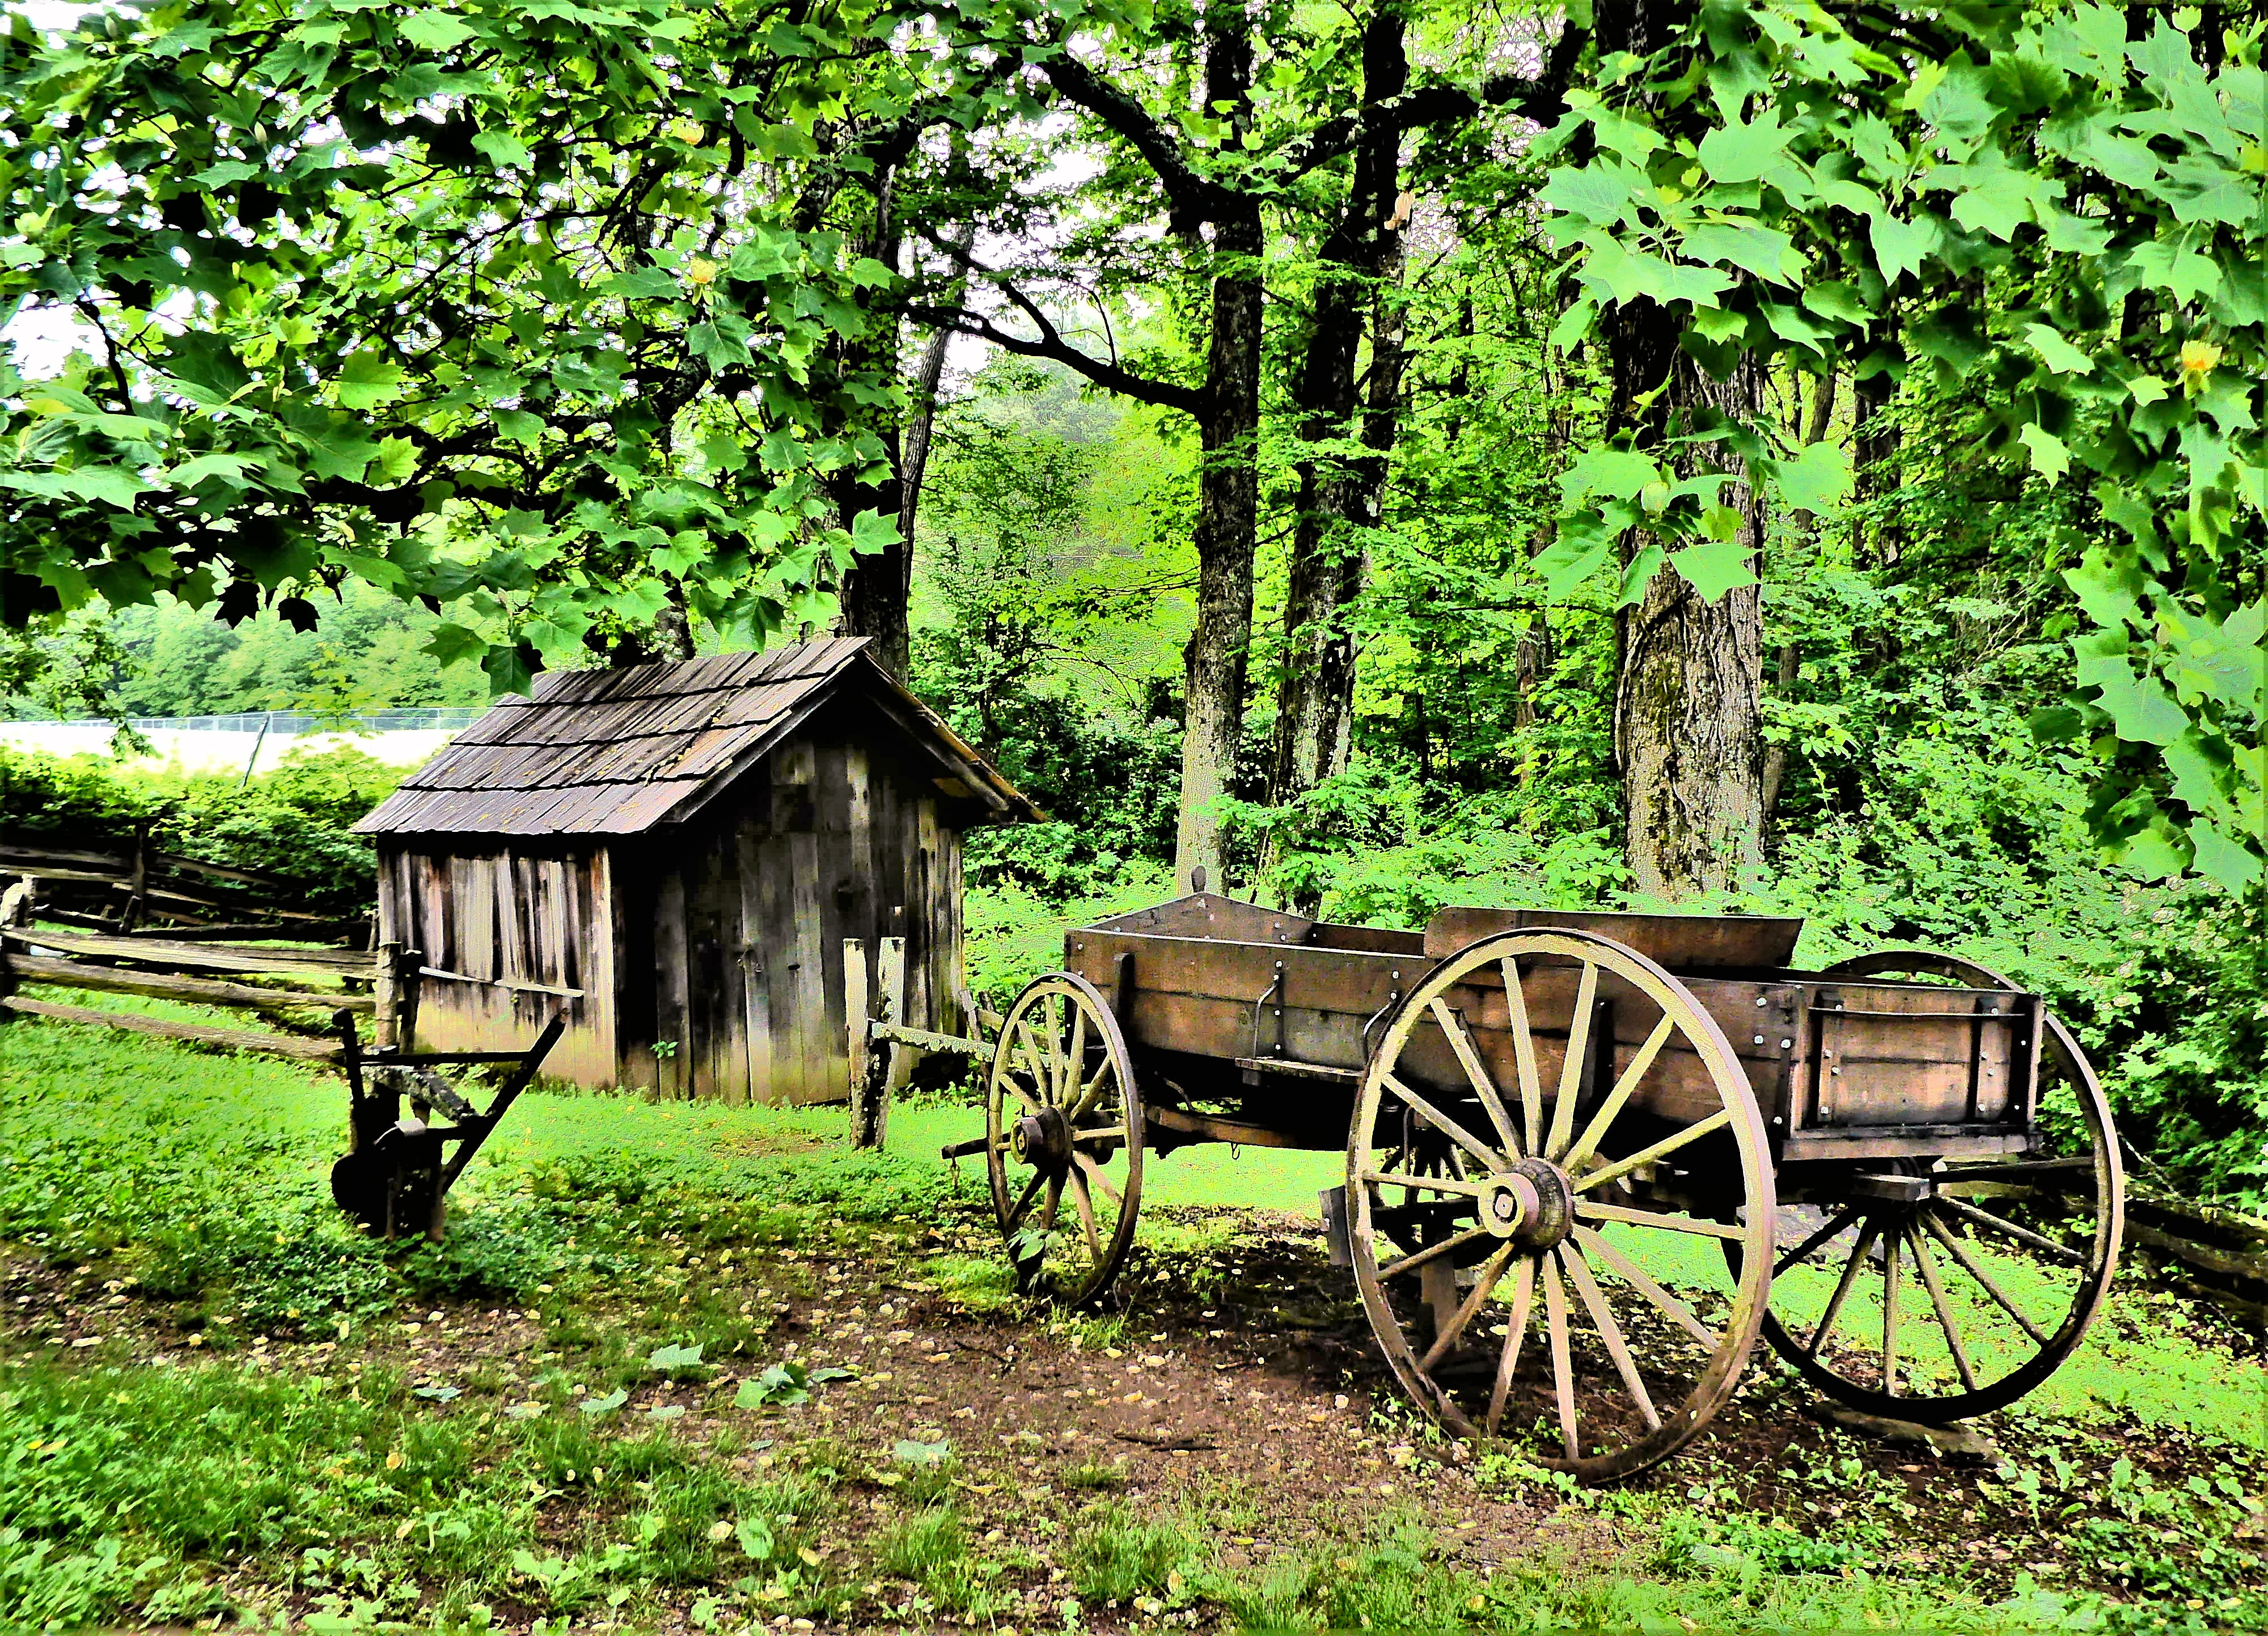 shed and wagon